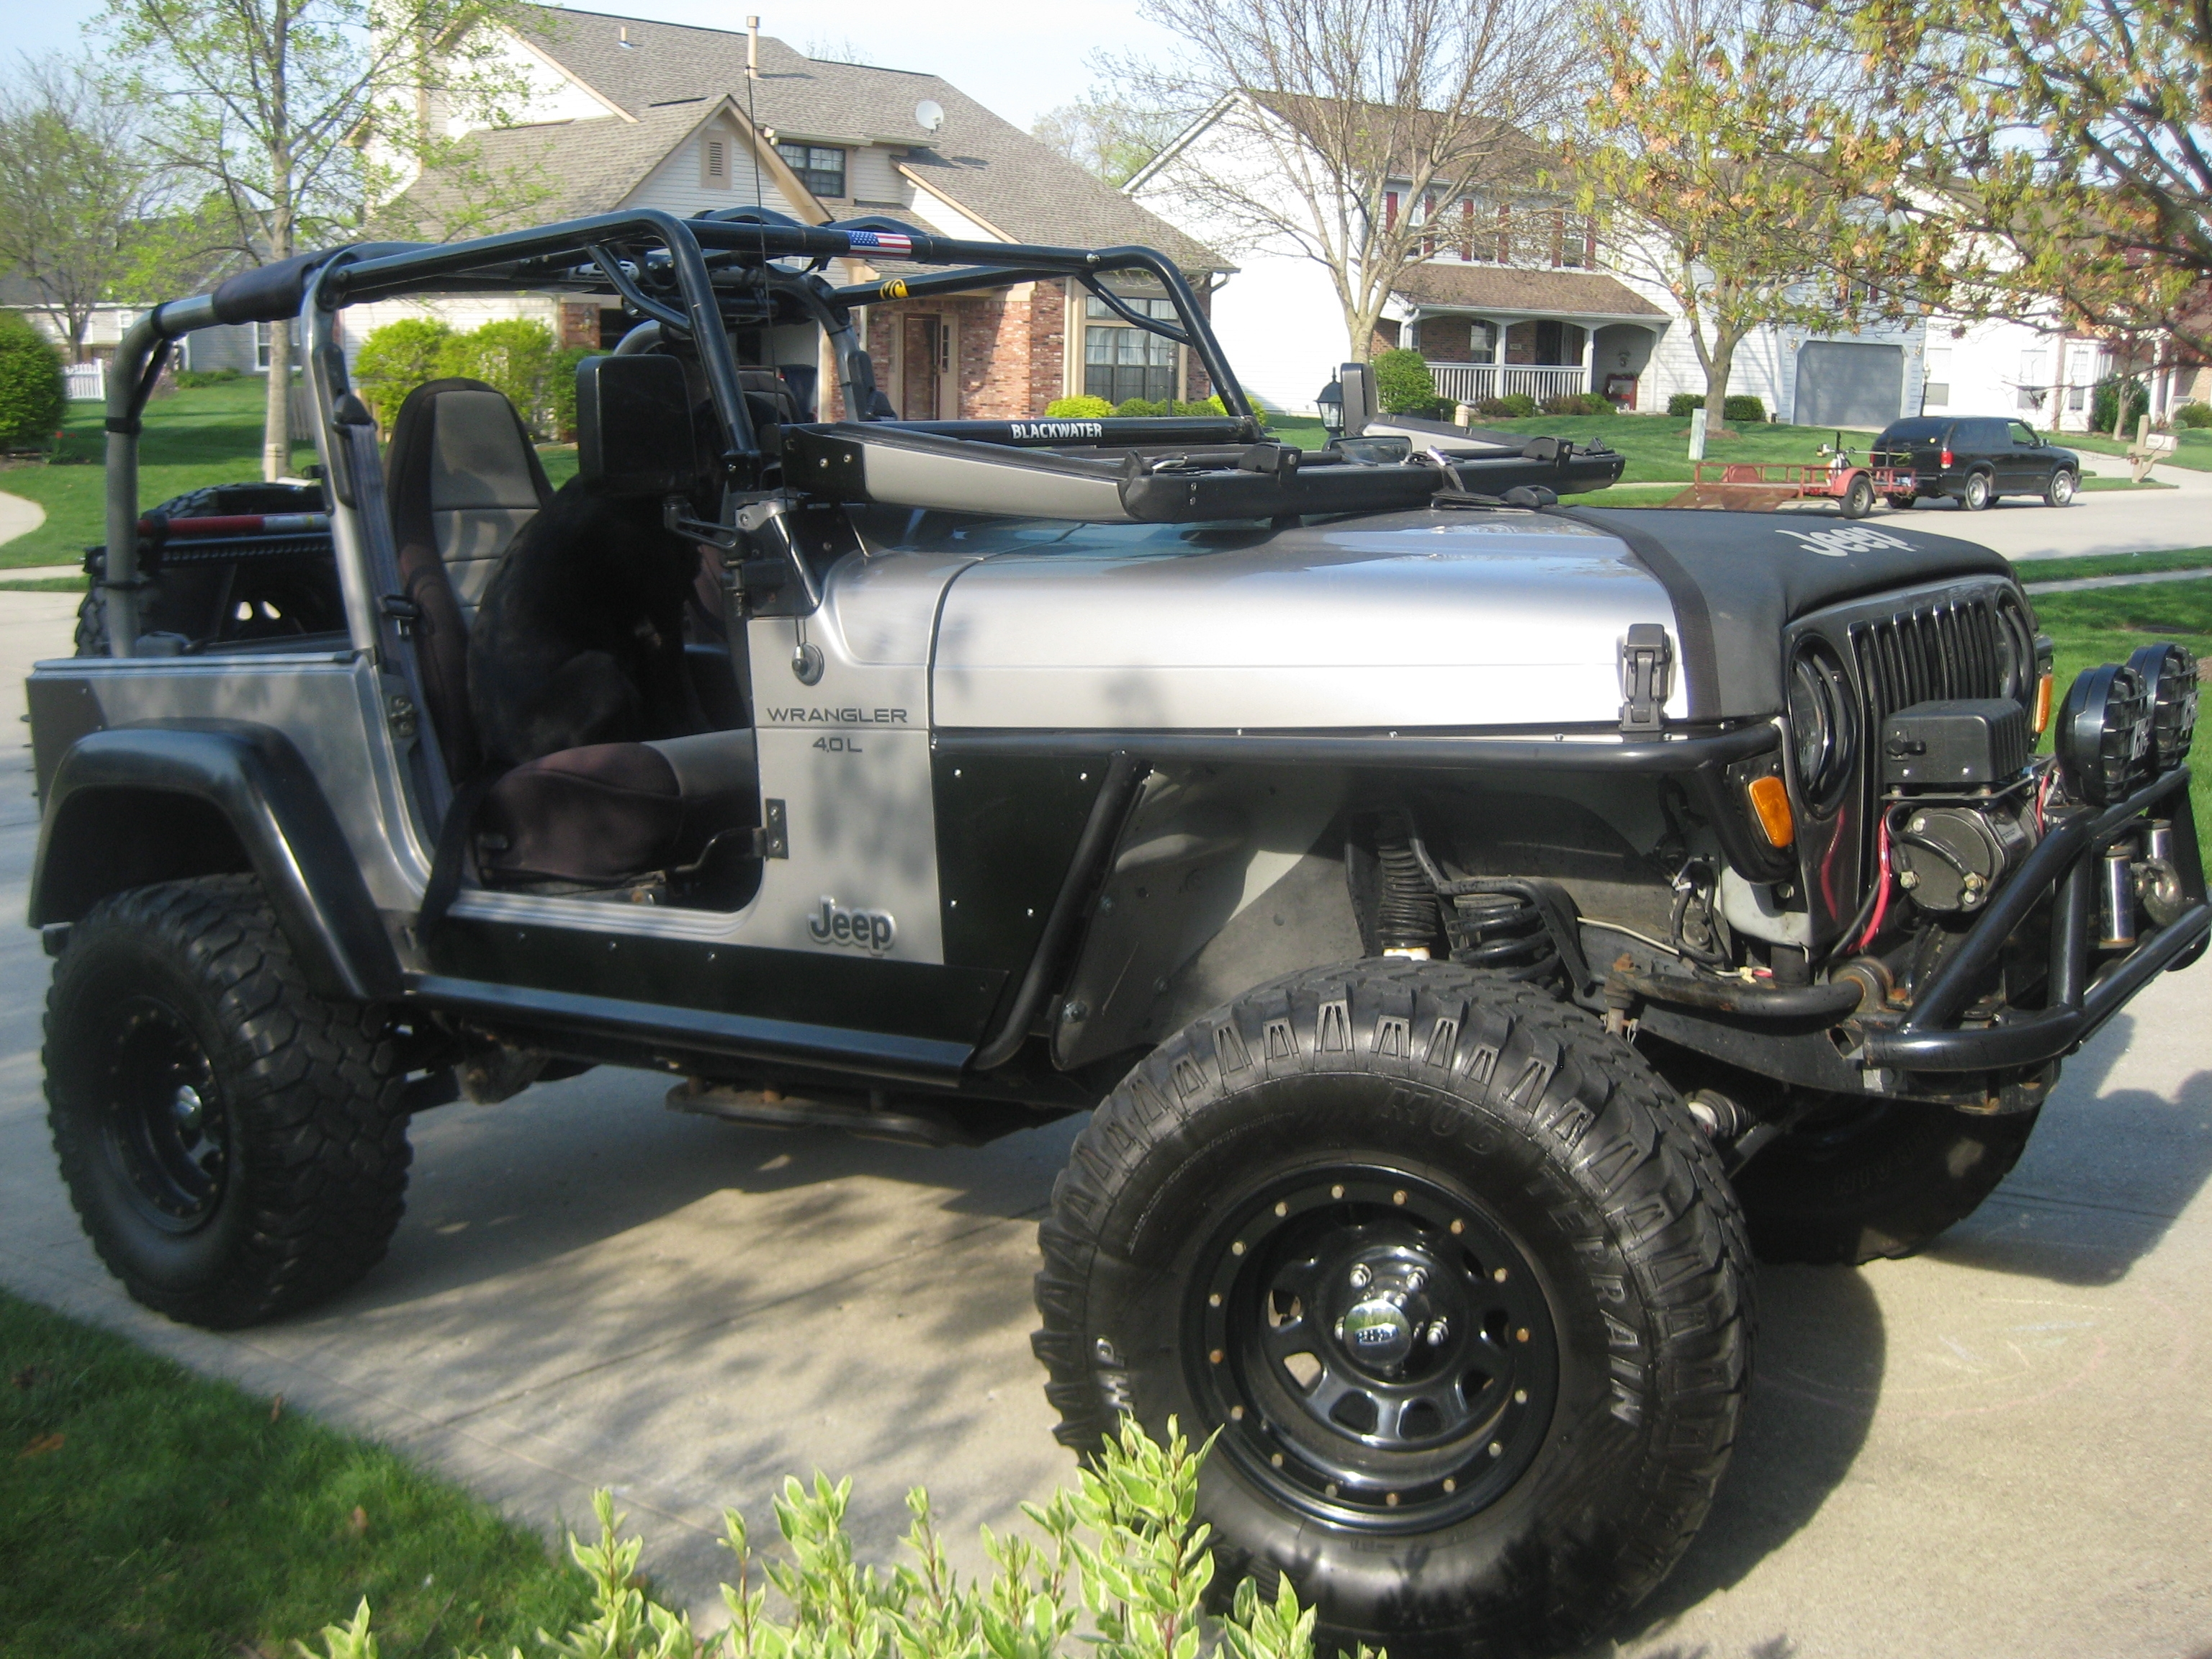 Lifted Jeeps For Sale >> dheil 2001 Jeep Wrangler Specs, Photos, Modification Info ...